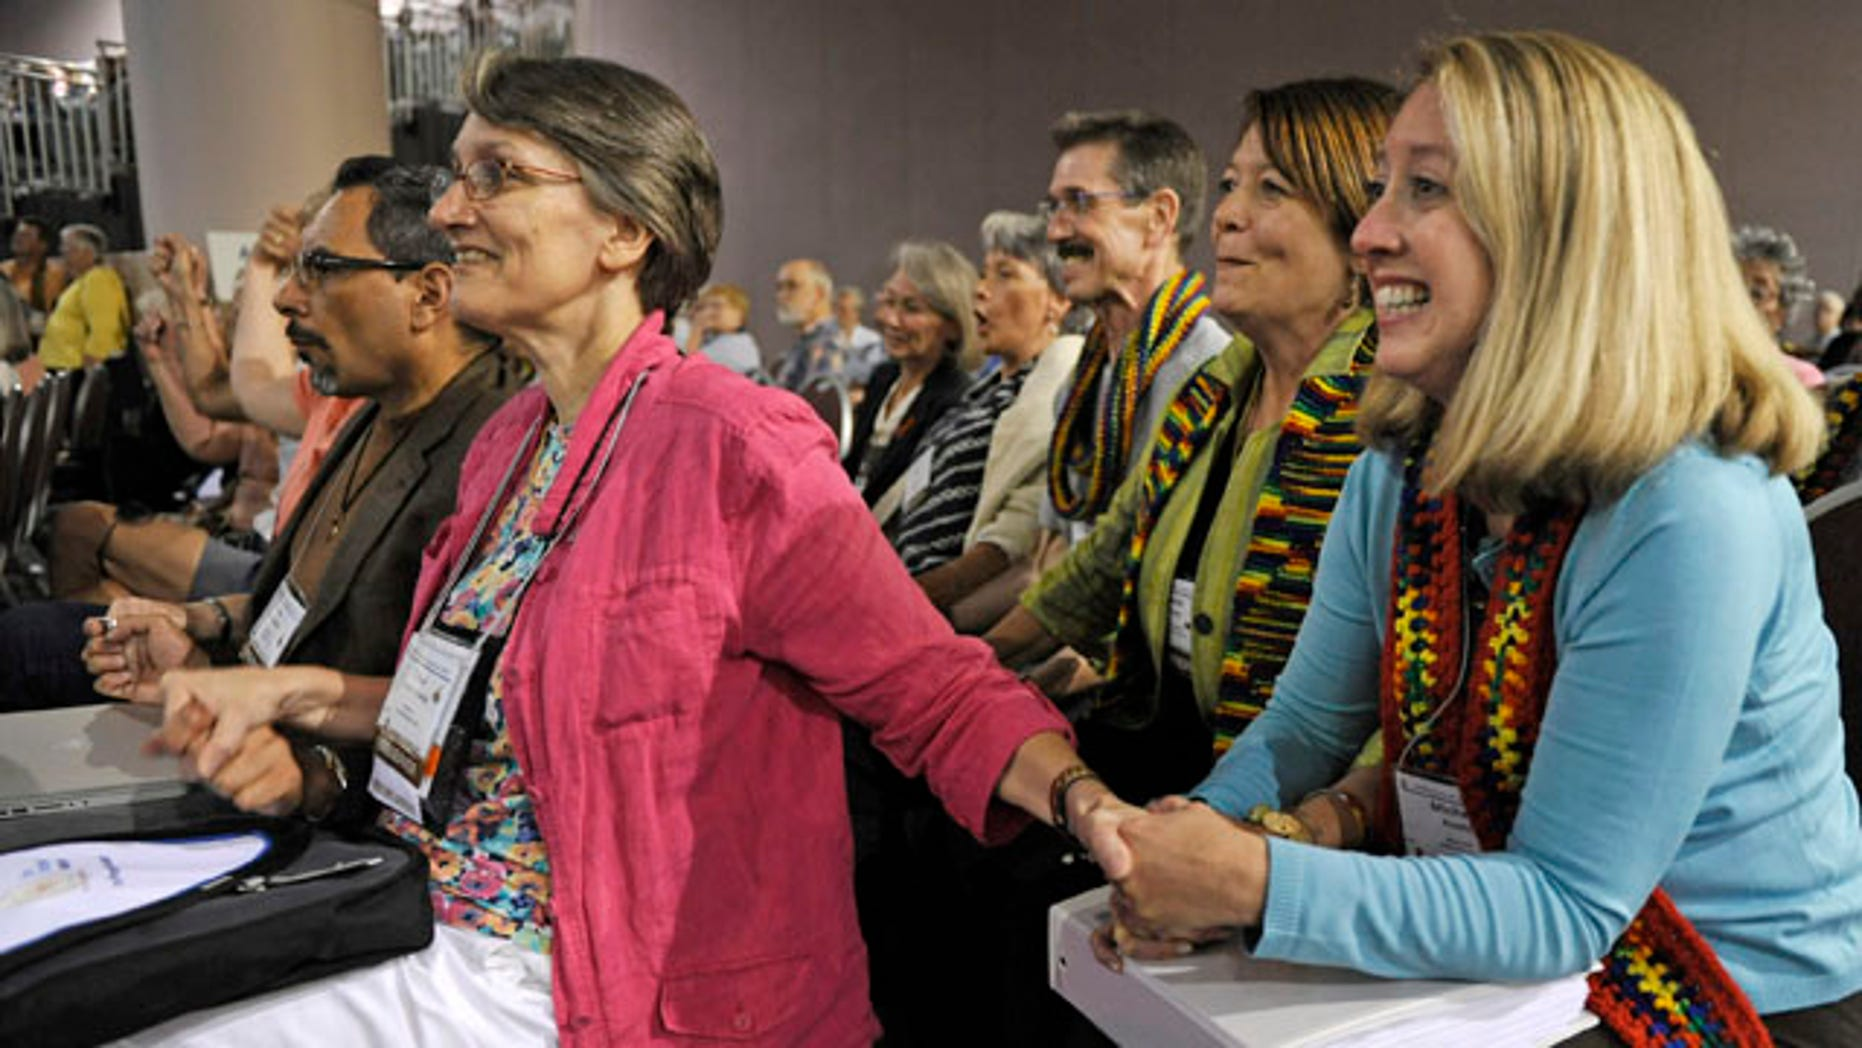 July 8: Observers Tricia Dykes Koenig, left, and Michelle Ready, right, smile as the General Assembly of the Presbyterian Church meeting in Minneapolis votes to approve lifting the churches ban on ordaining non-celebrate gays and lesbians as clergy.